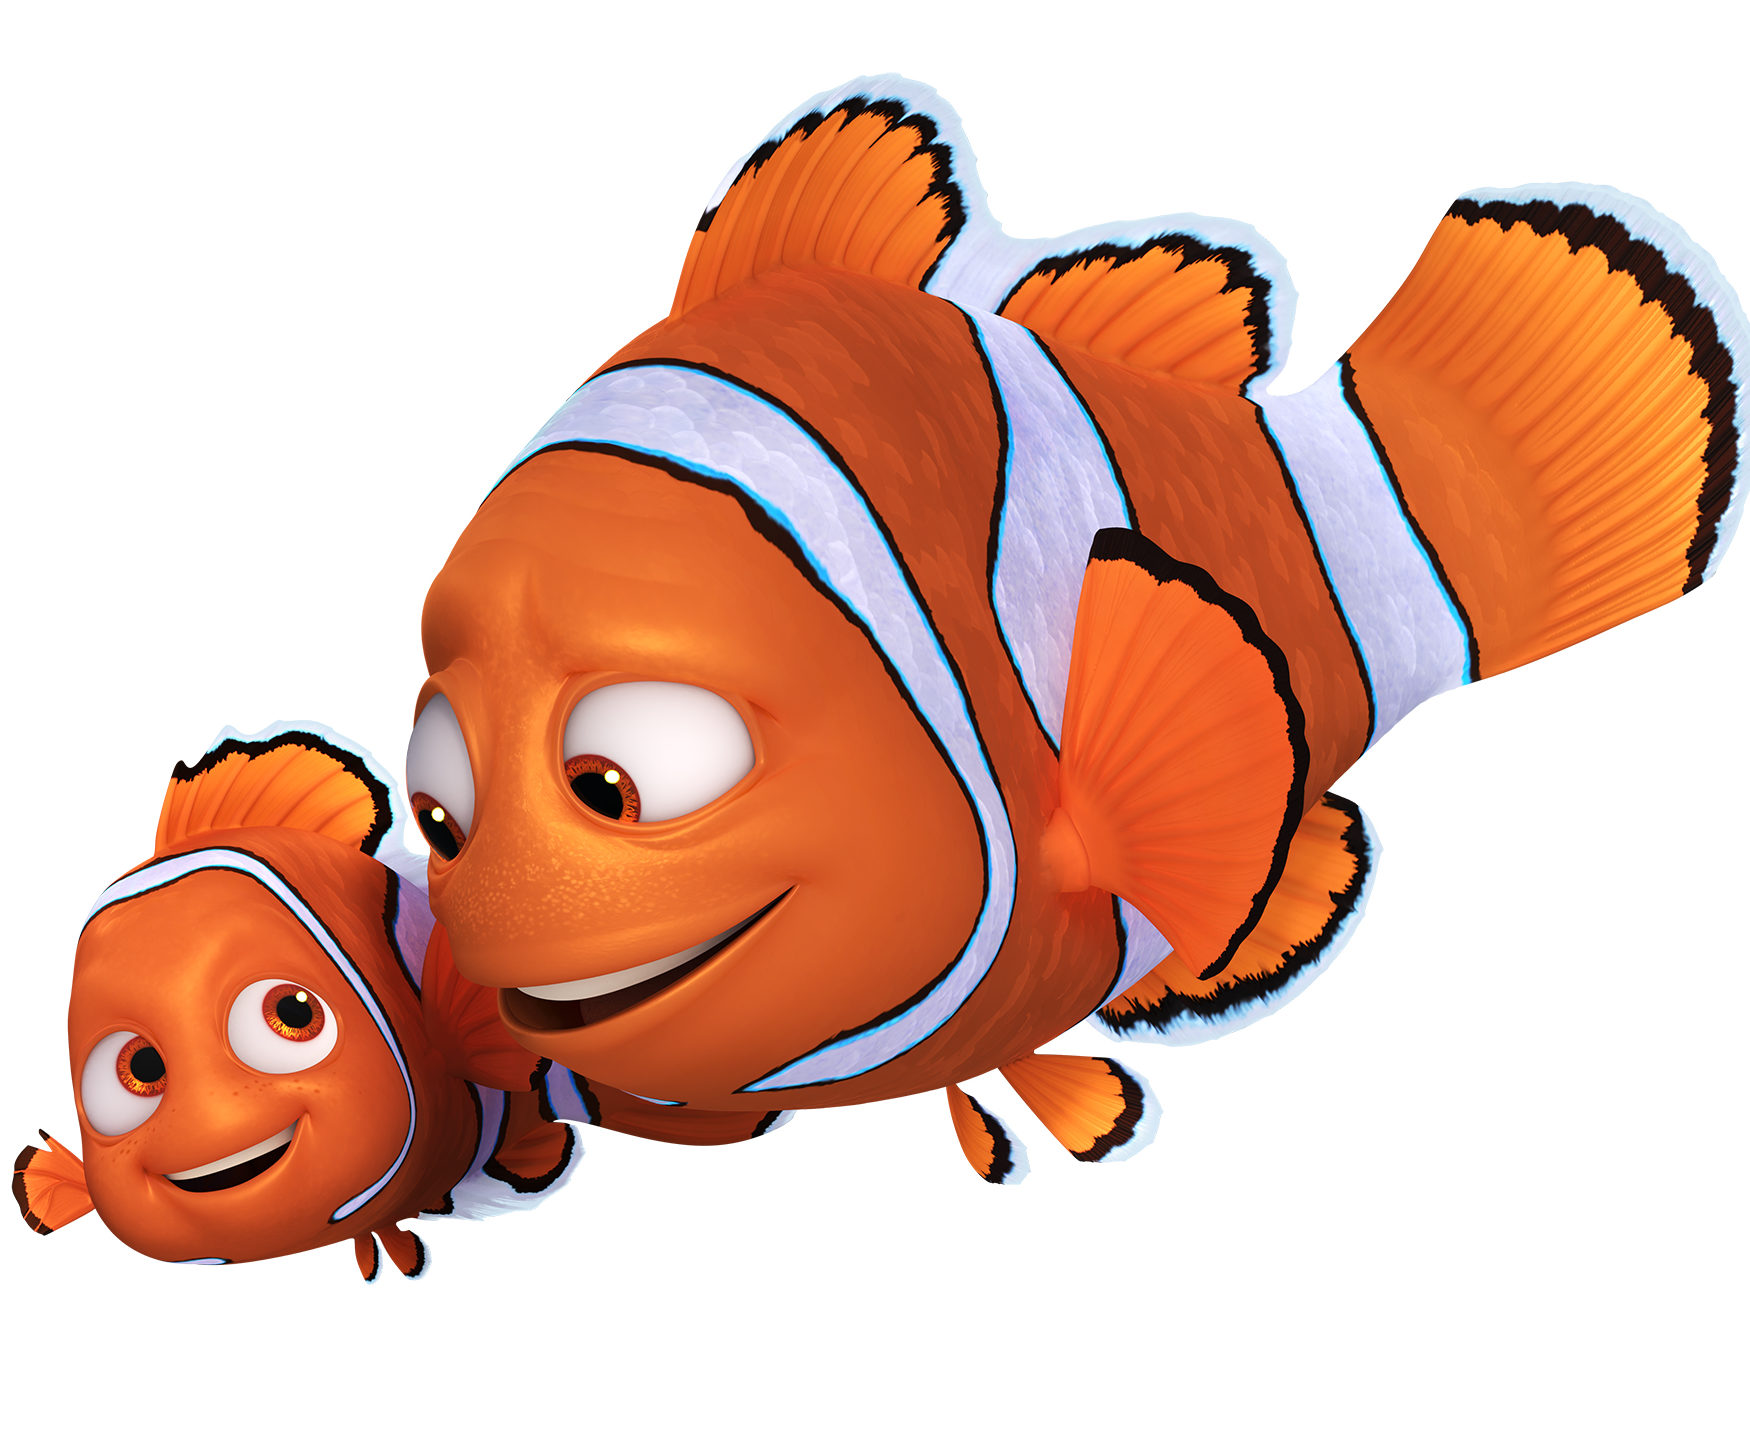 FINDING DORY - Pictured (L-R): One year after his big overseas adventure, NEMO (voice of Hayden Rolence) is back to being a normal kid: going to school and living on the coral reef with his dad and their blue tang neighbor, Dory. His harrowing adventure abroad doesn't seem to have sapped his spirit. In fact, when Dory remembers pieces of her past and longs to take off on an ambitious ocean trek to find her family, Nemo is the first to offer his help. He may be a young clownfish with a lucky fin, but Nemo wholeheartedly believes in Dory. After all, he understands what it's like to be different. MARLIN (voice of Albert Brooks) may have traveled across the ocean once, but that doesn't mean he wants to do it again. So he doesn't exactly jump at the opportunity to accompany Dory on a mission to the California coast to track down her family. Marlin, of course, knows how it feels to lose family, and it was Dory who helped him find Nemo not so long ago. The clownfish may not be funny, but he's loyal—he realizes he has no choice but to pack up his nervous energy and skepticism and embark on yet another adventure, this time to help his friend. ©2016 Disney•Pixar. All Rights Reserved.